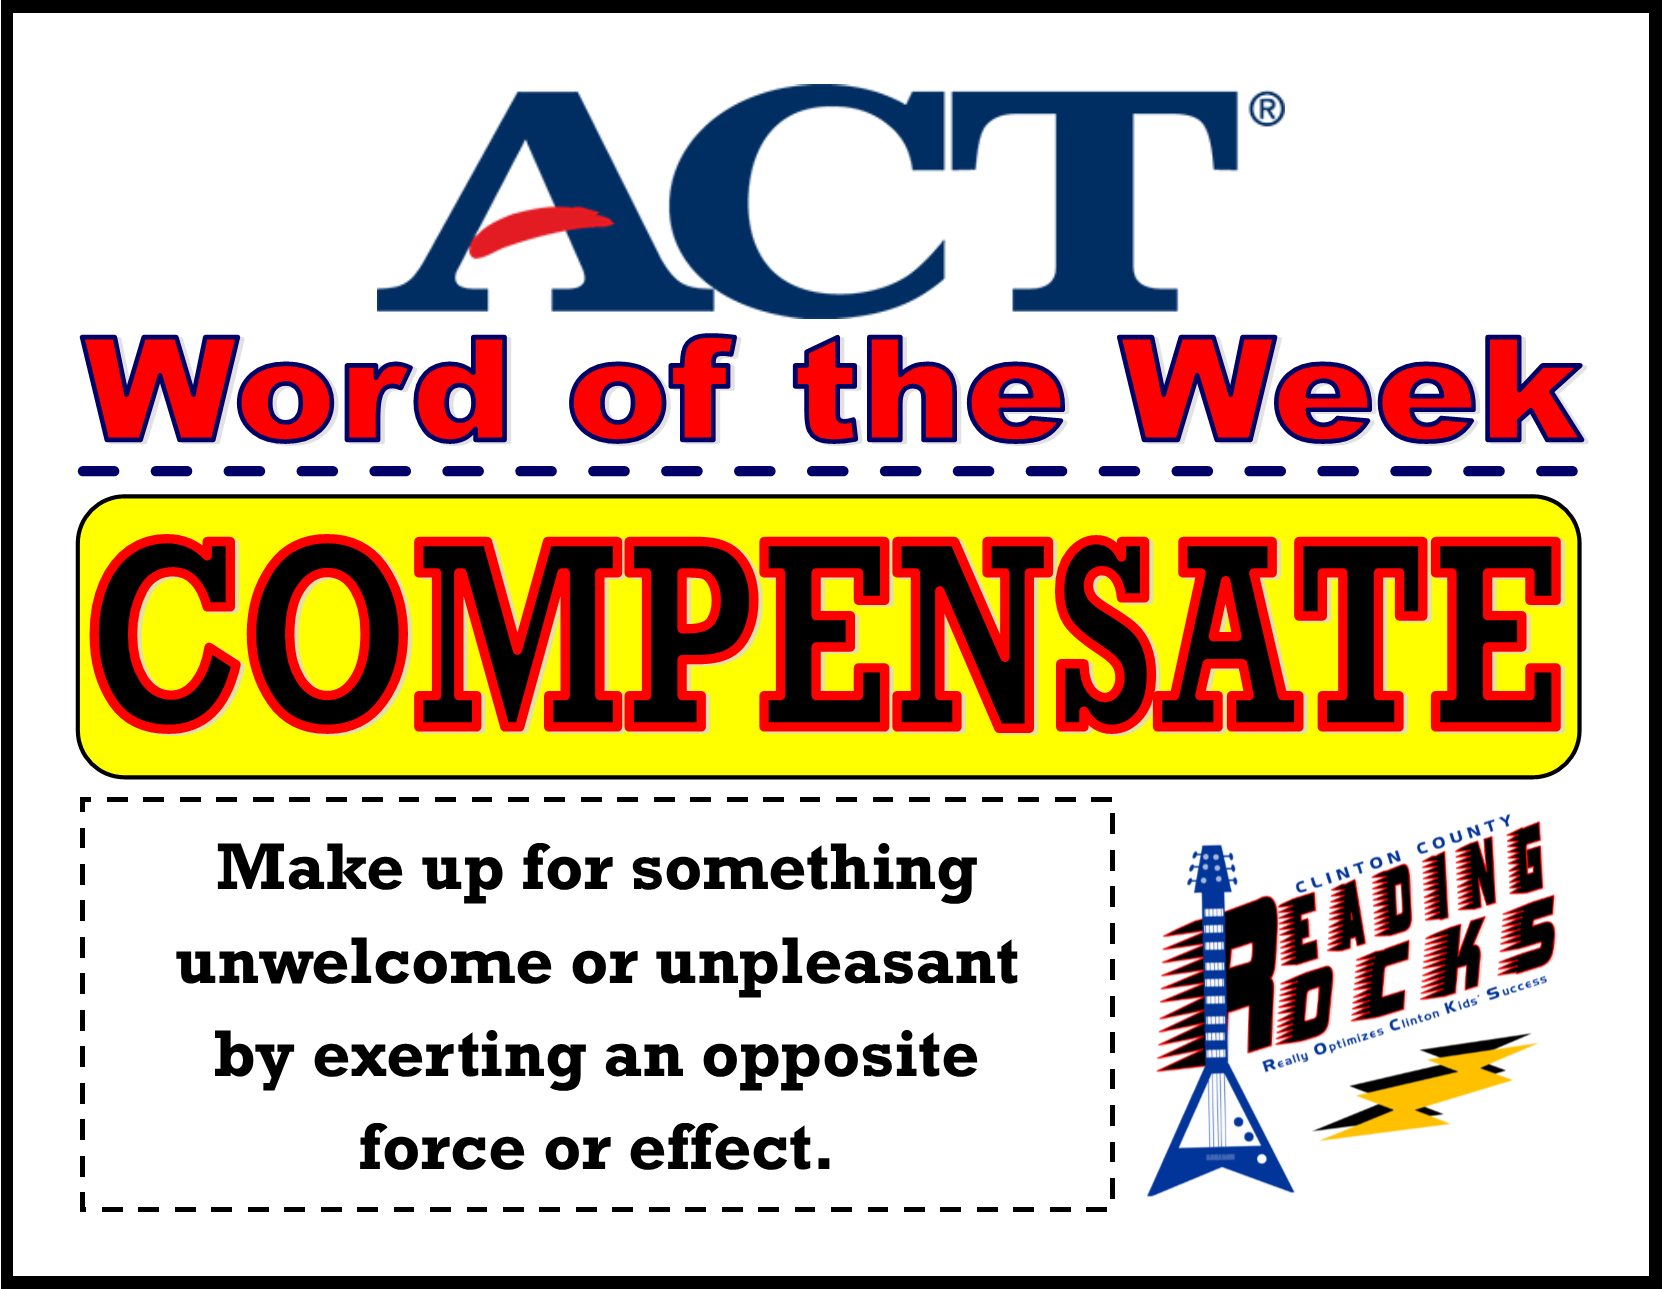 ACT Word of the Week - COMPENSATE